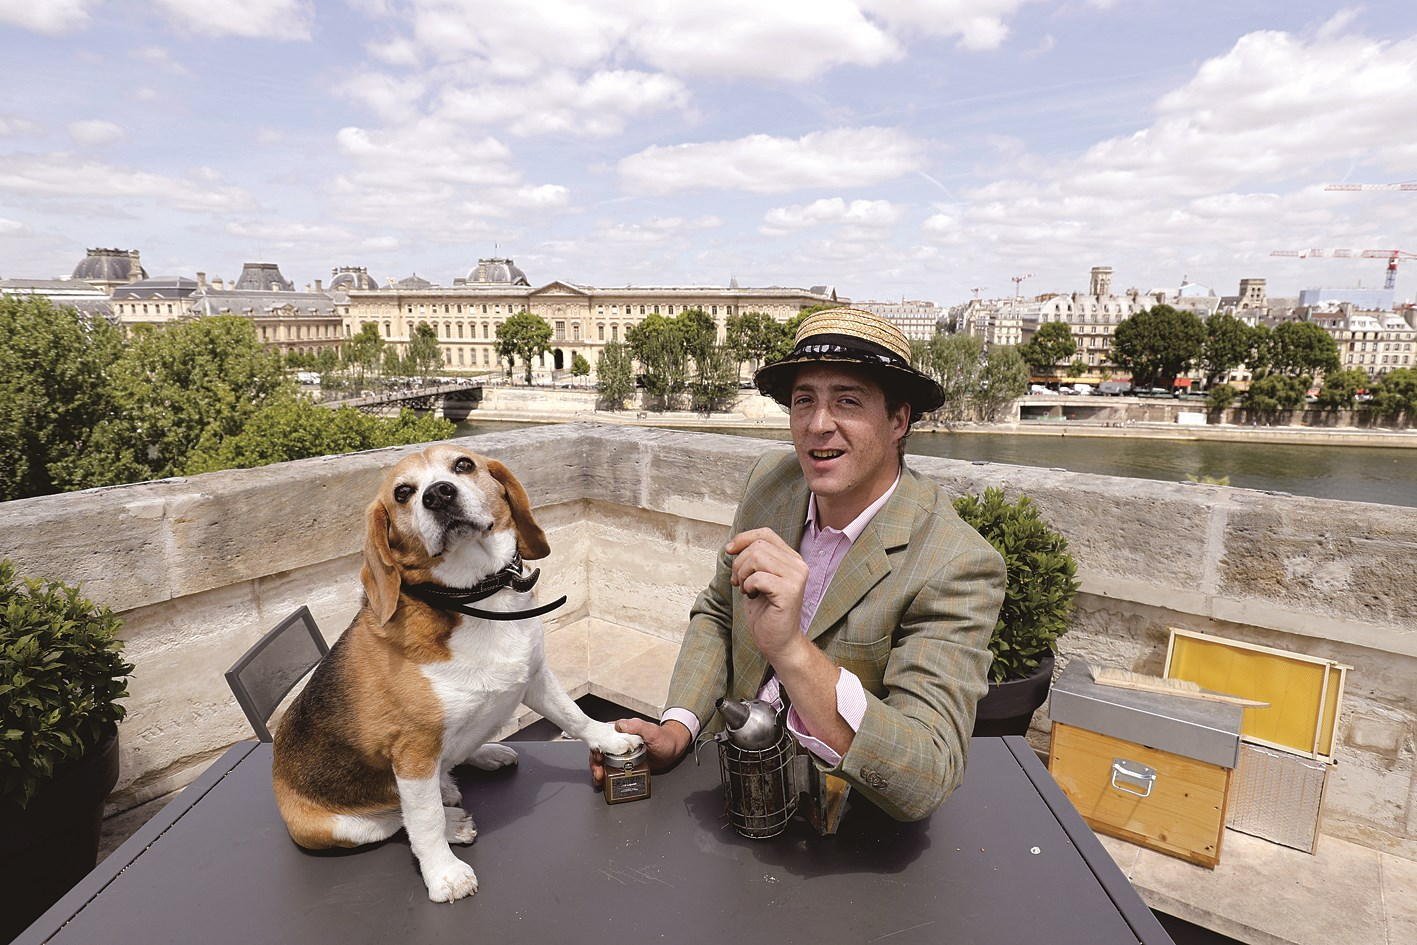 Audric de Campeau posing with his dog as he checks beehives set on the roof of the Monnaie de Paris in Paris. — AFP